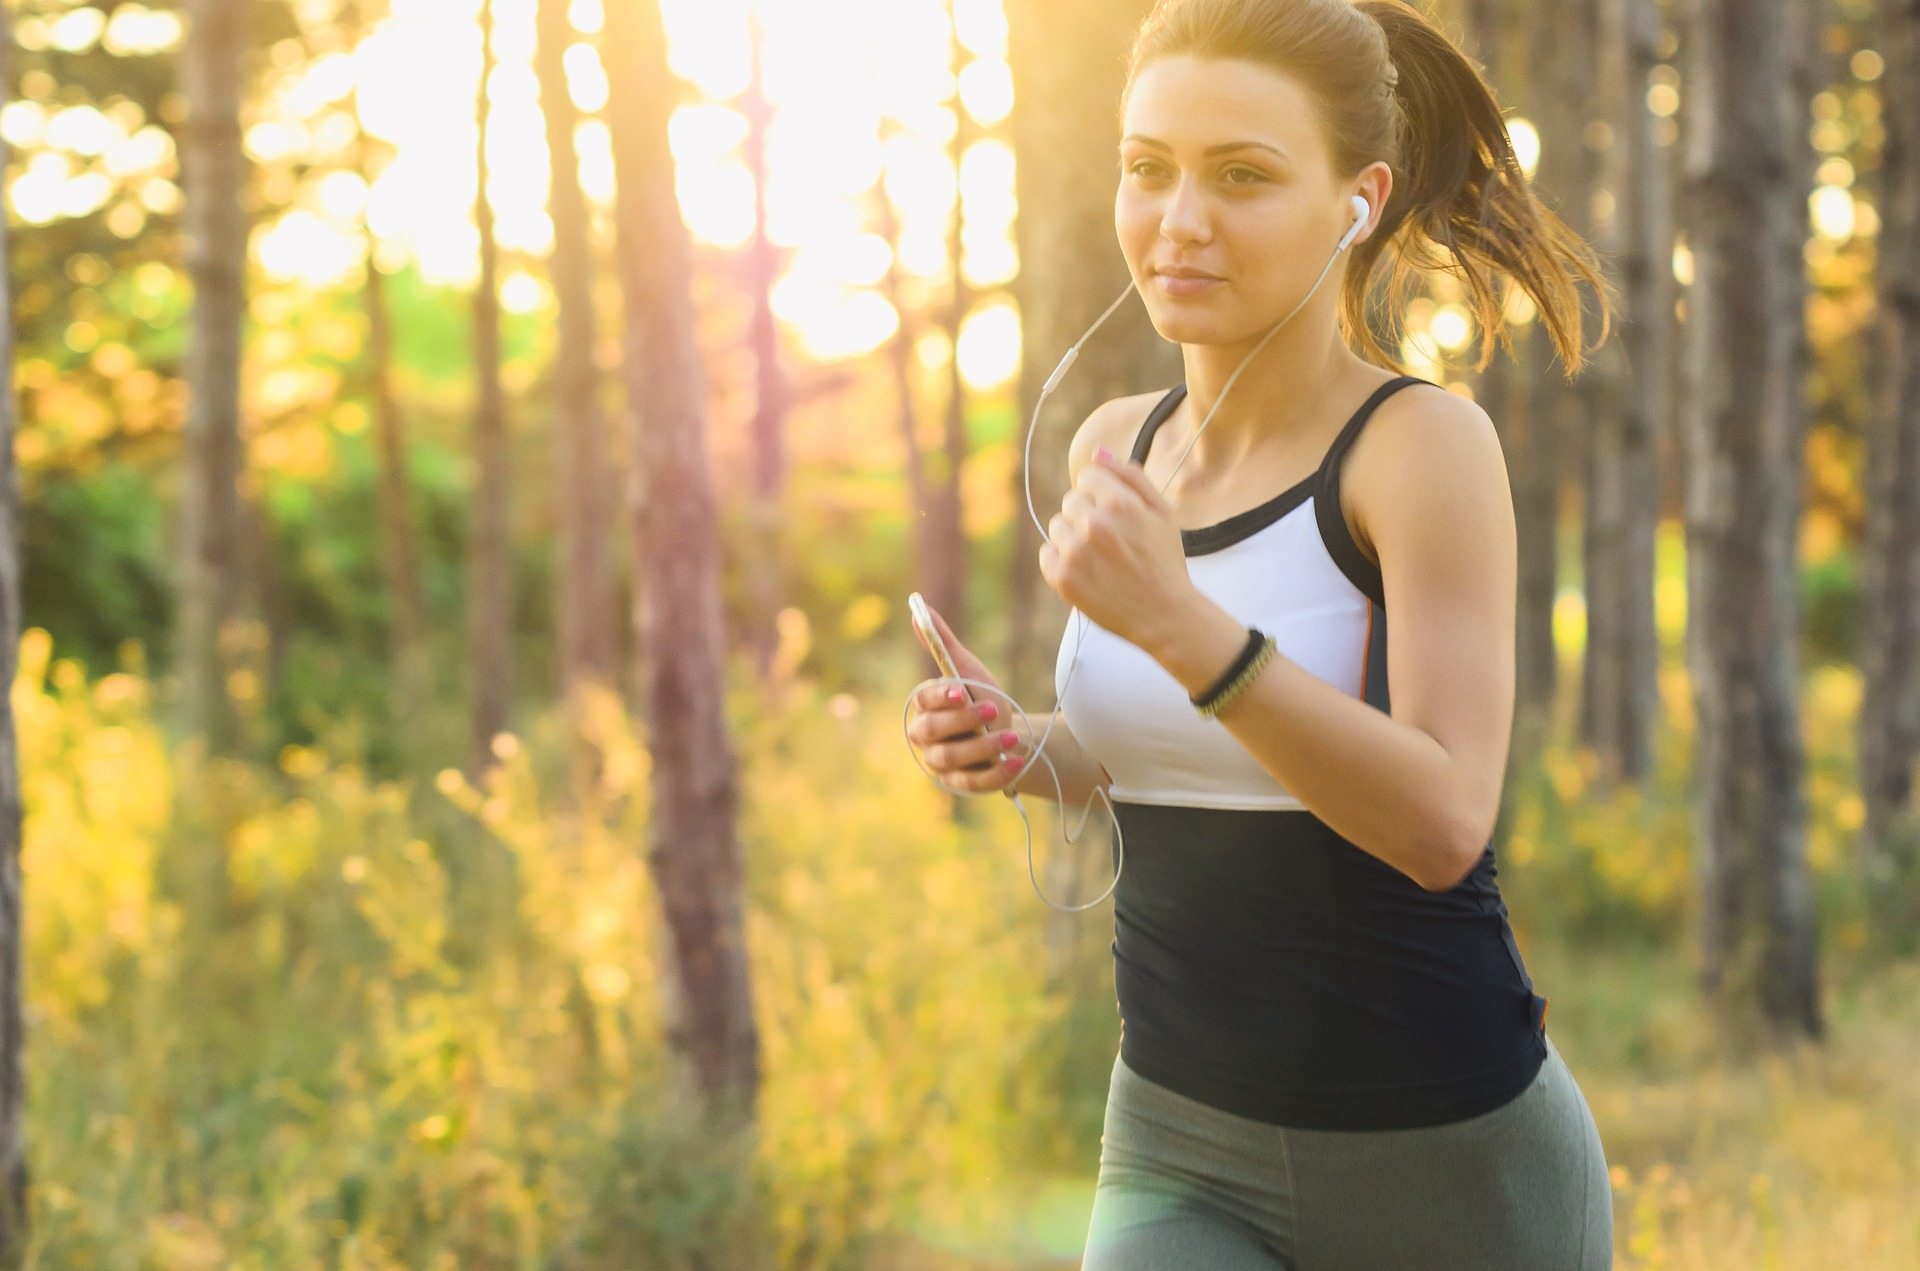 Add jogging outside to your daily habits to increase happiness and health.